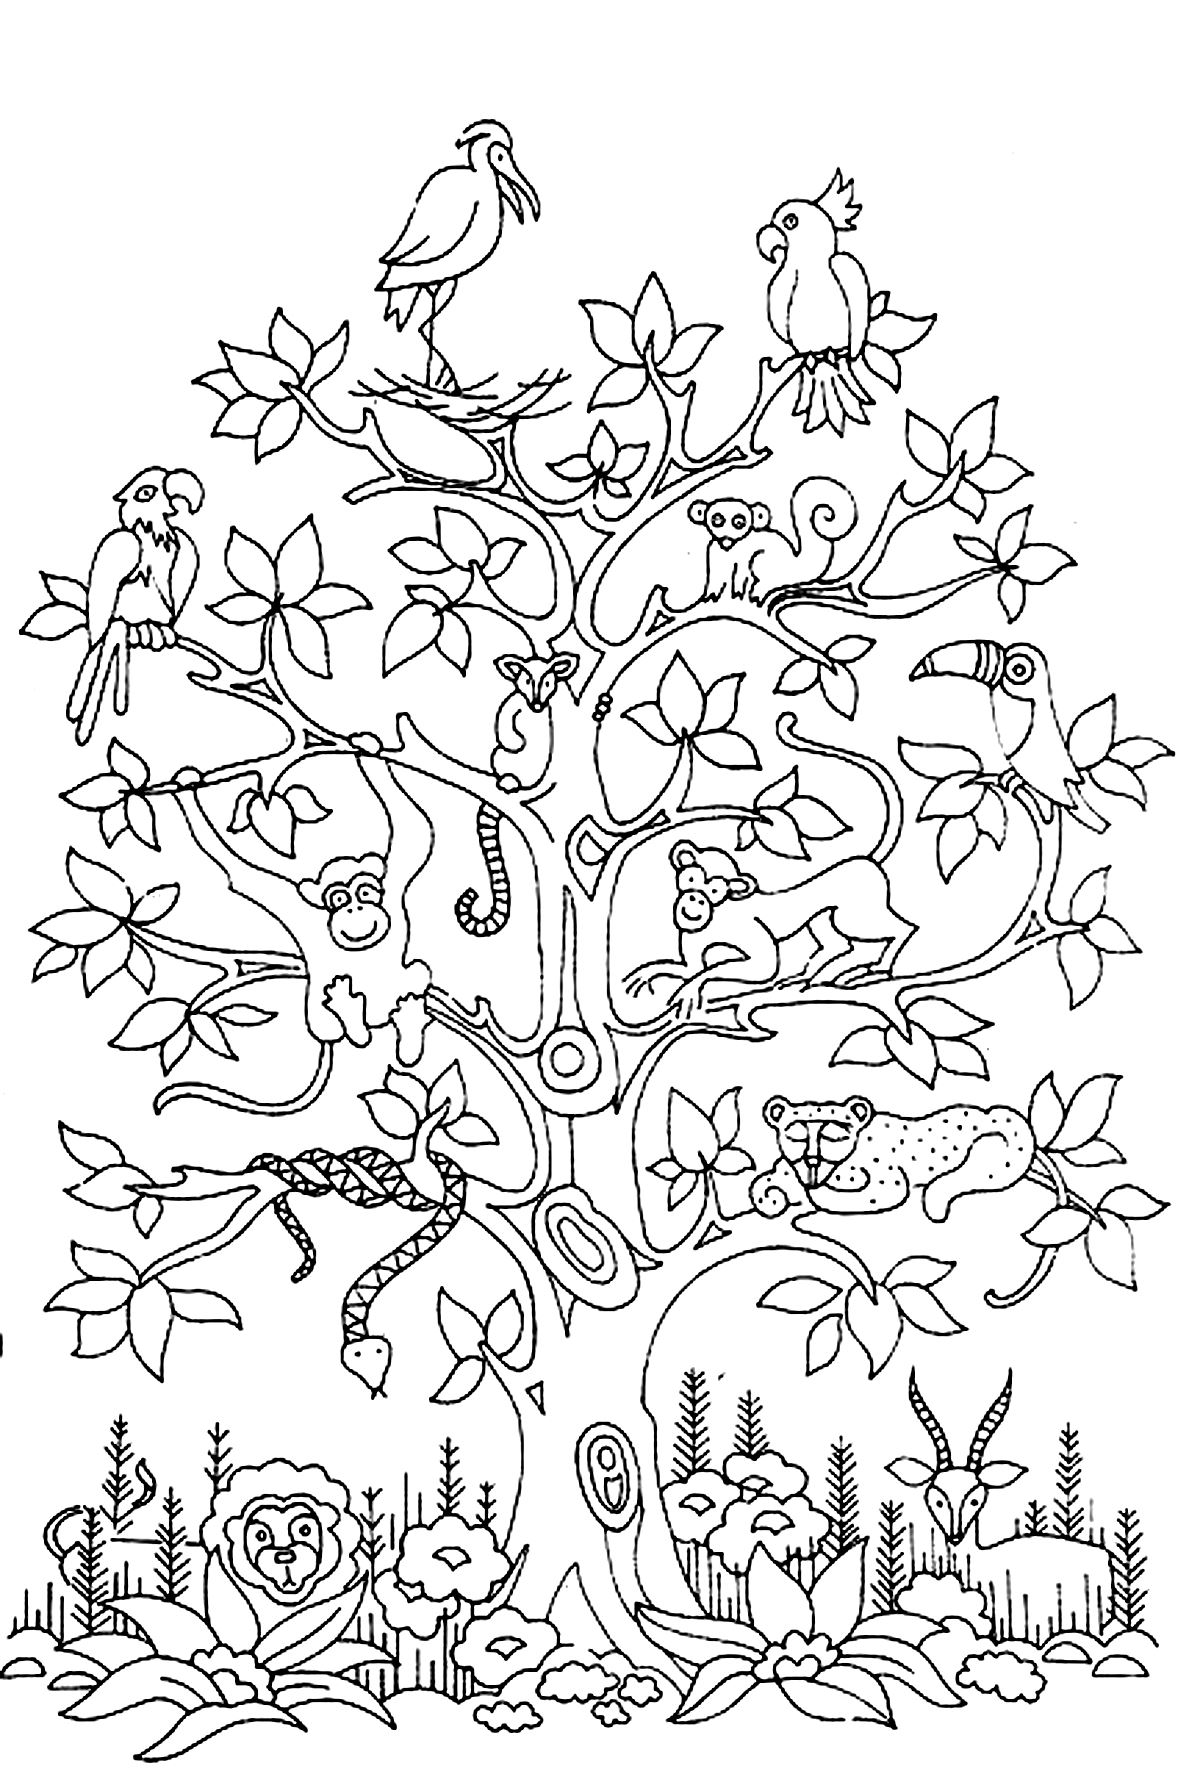 A Tree With Birds Butterflies And Even Monkey Coloring Adult Christmas Simple